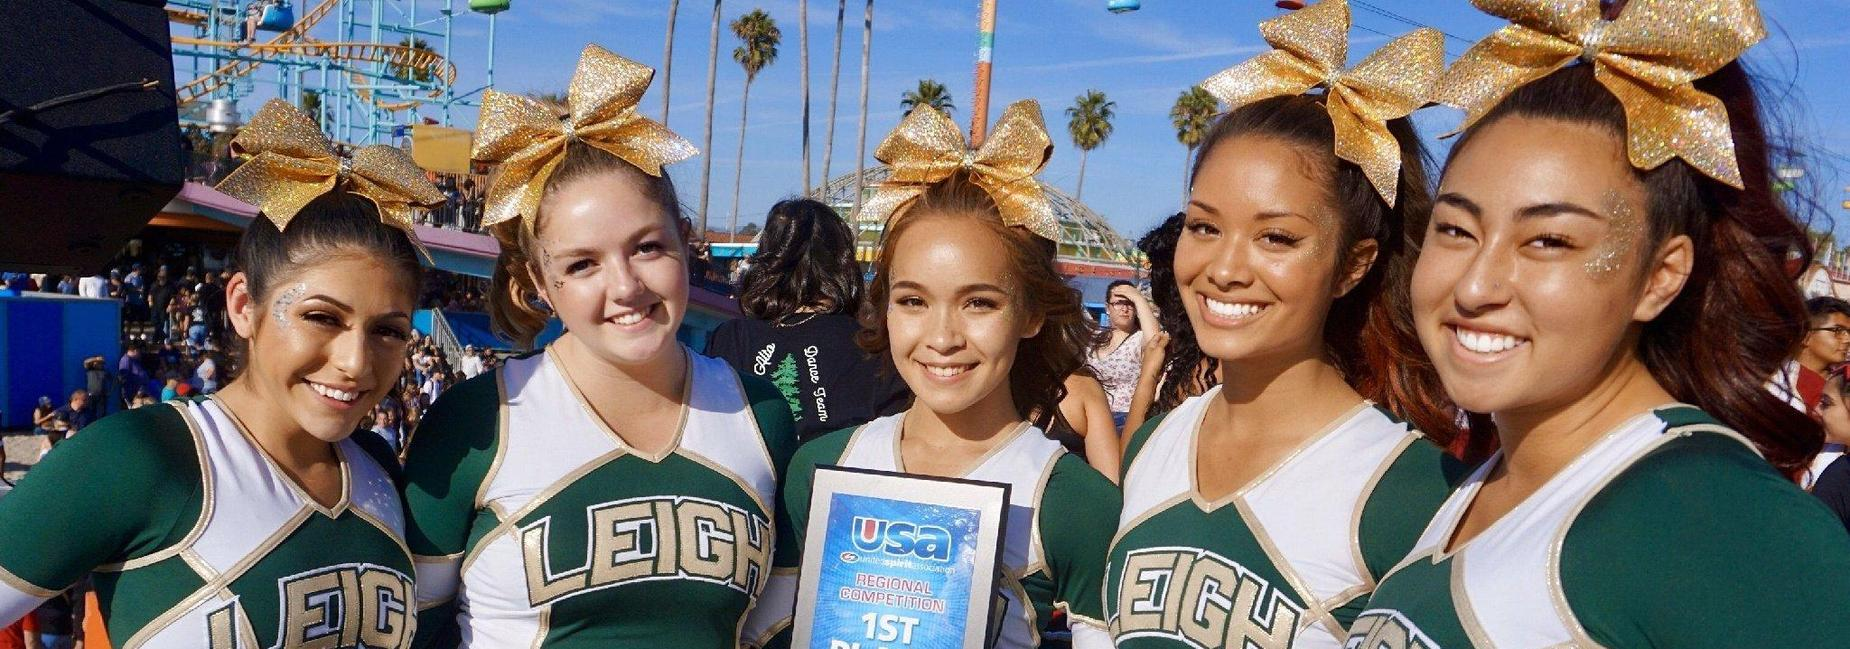 Five Leigh cheerleaders posing with first place award